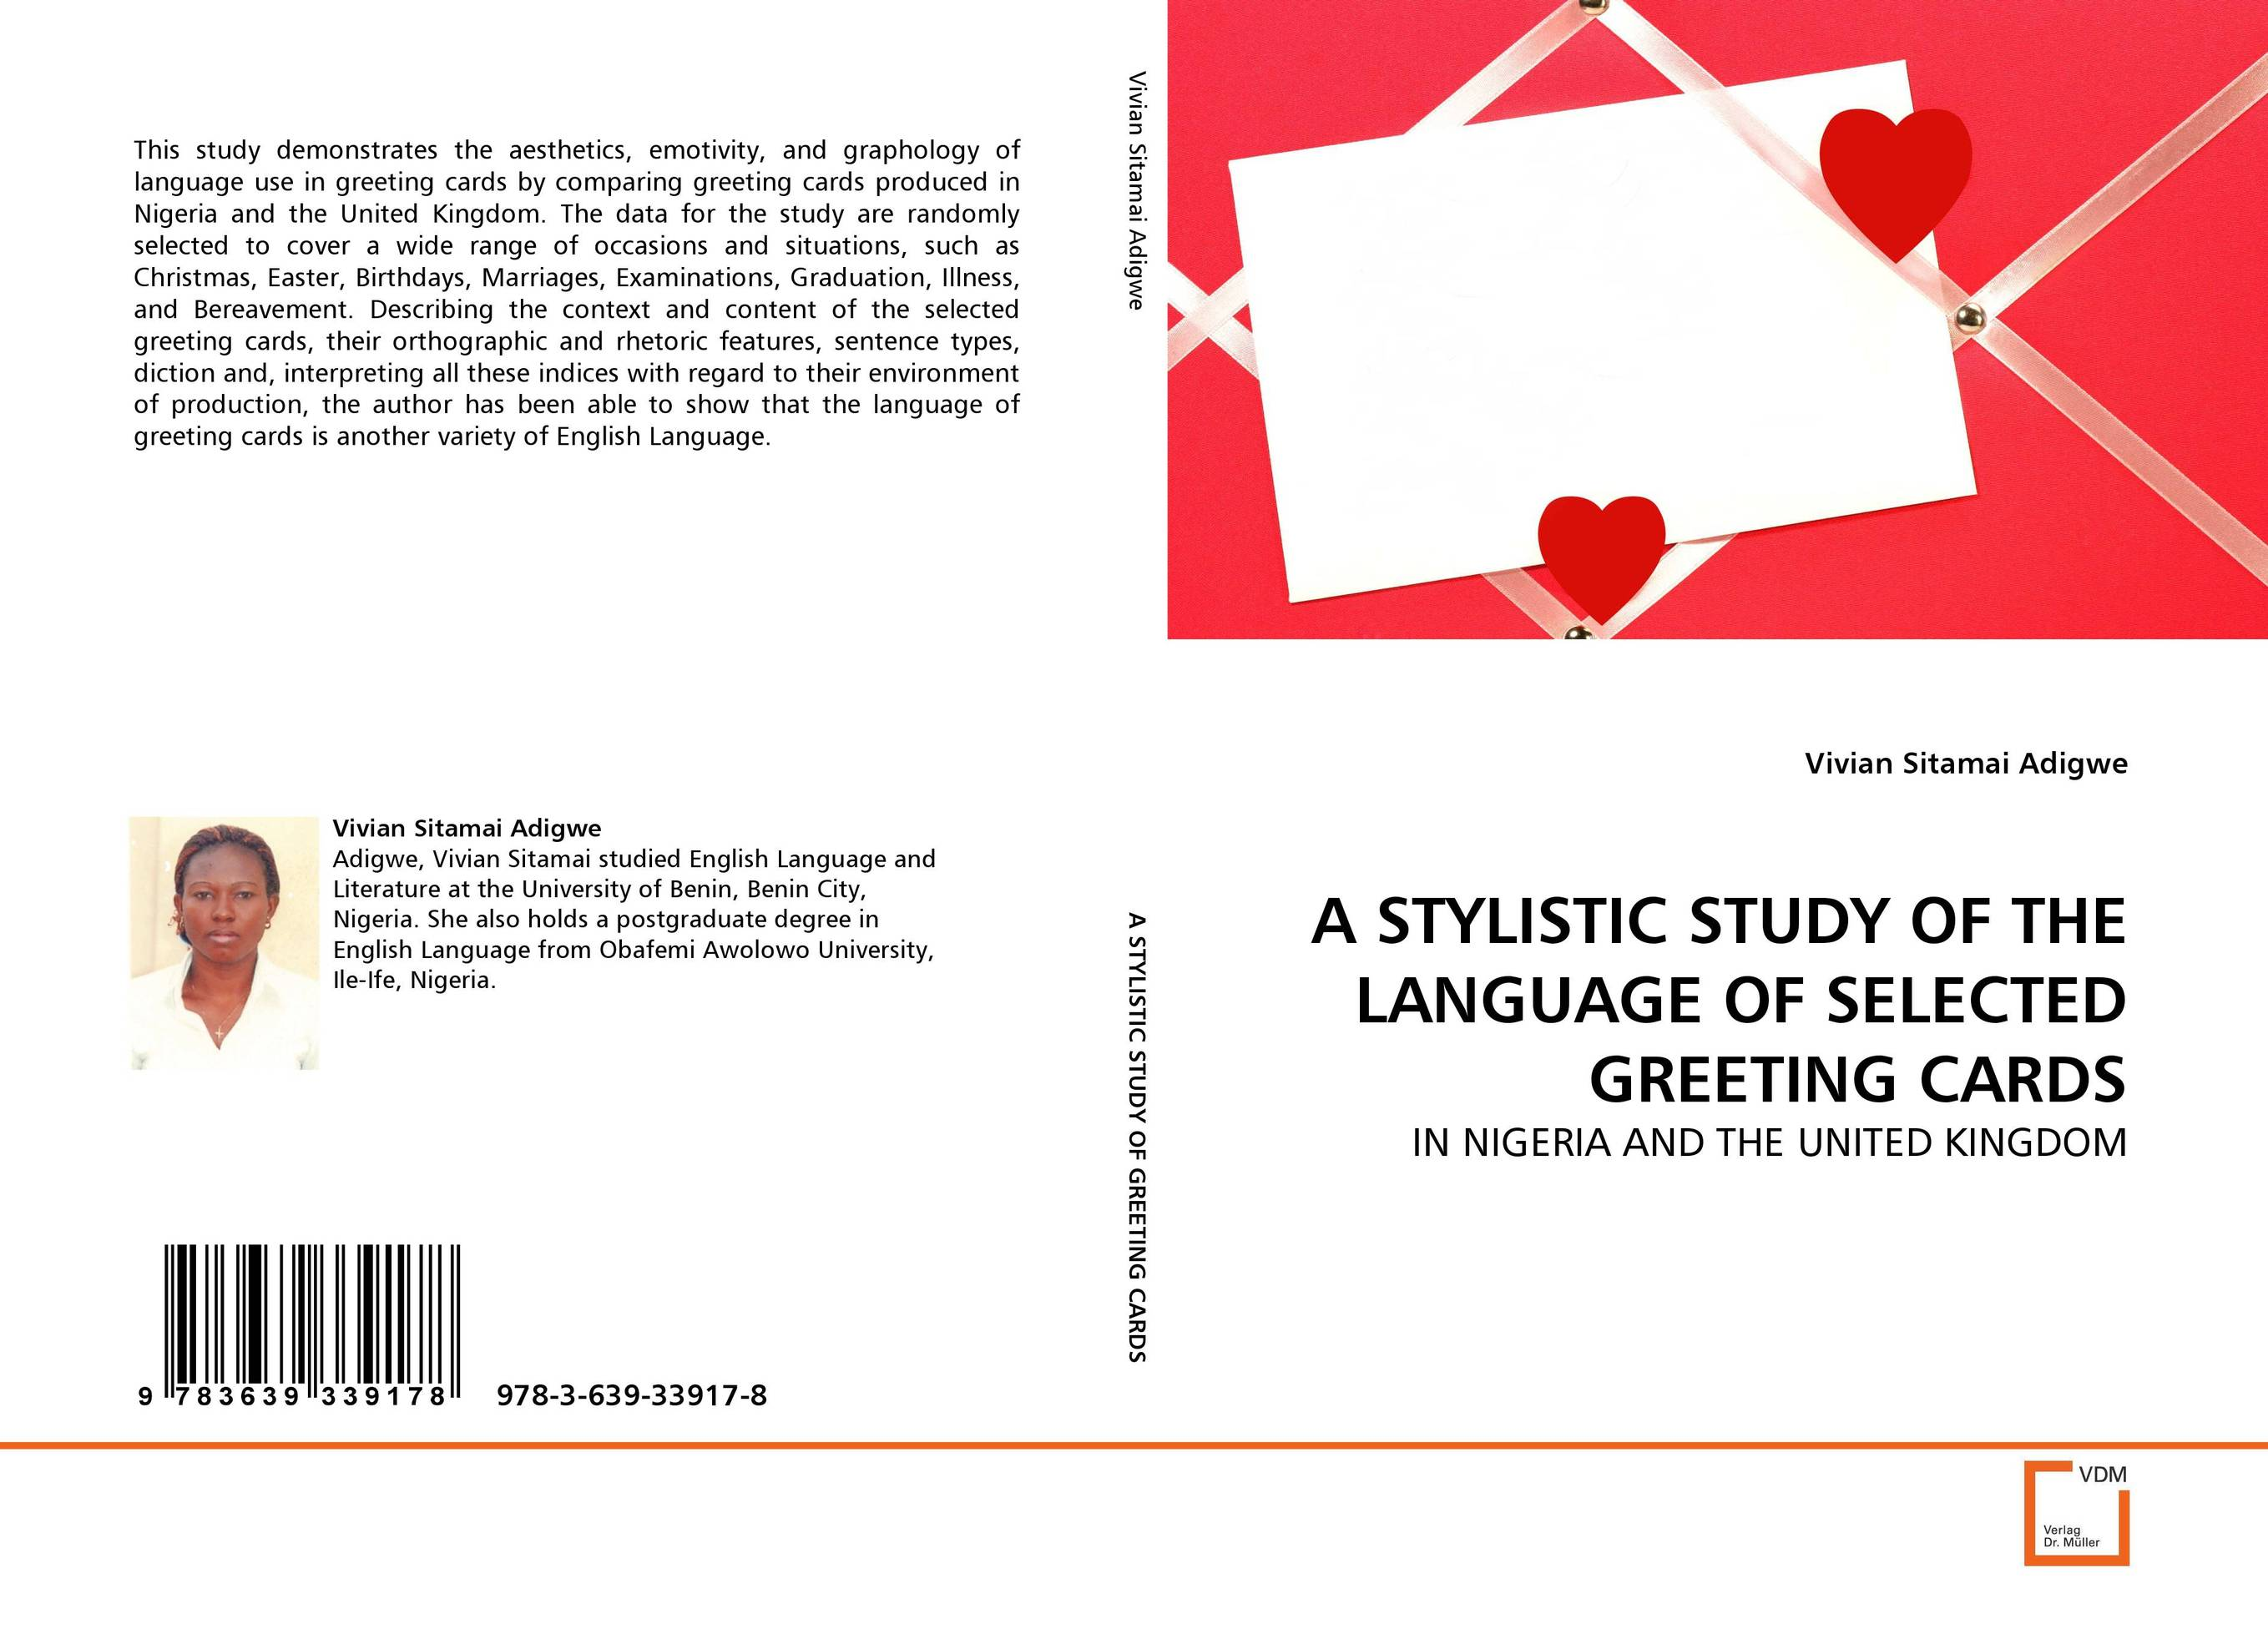 A STYLISTIC STUDY OF THE LANGUAGE OF SELECTED GREETING CARDS a case study of the use of bim and cobie for facility management